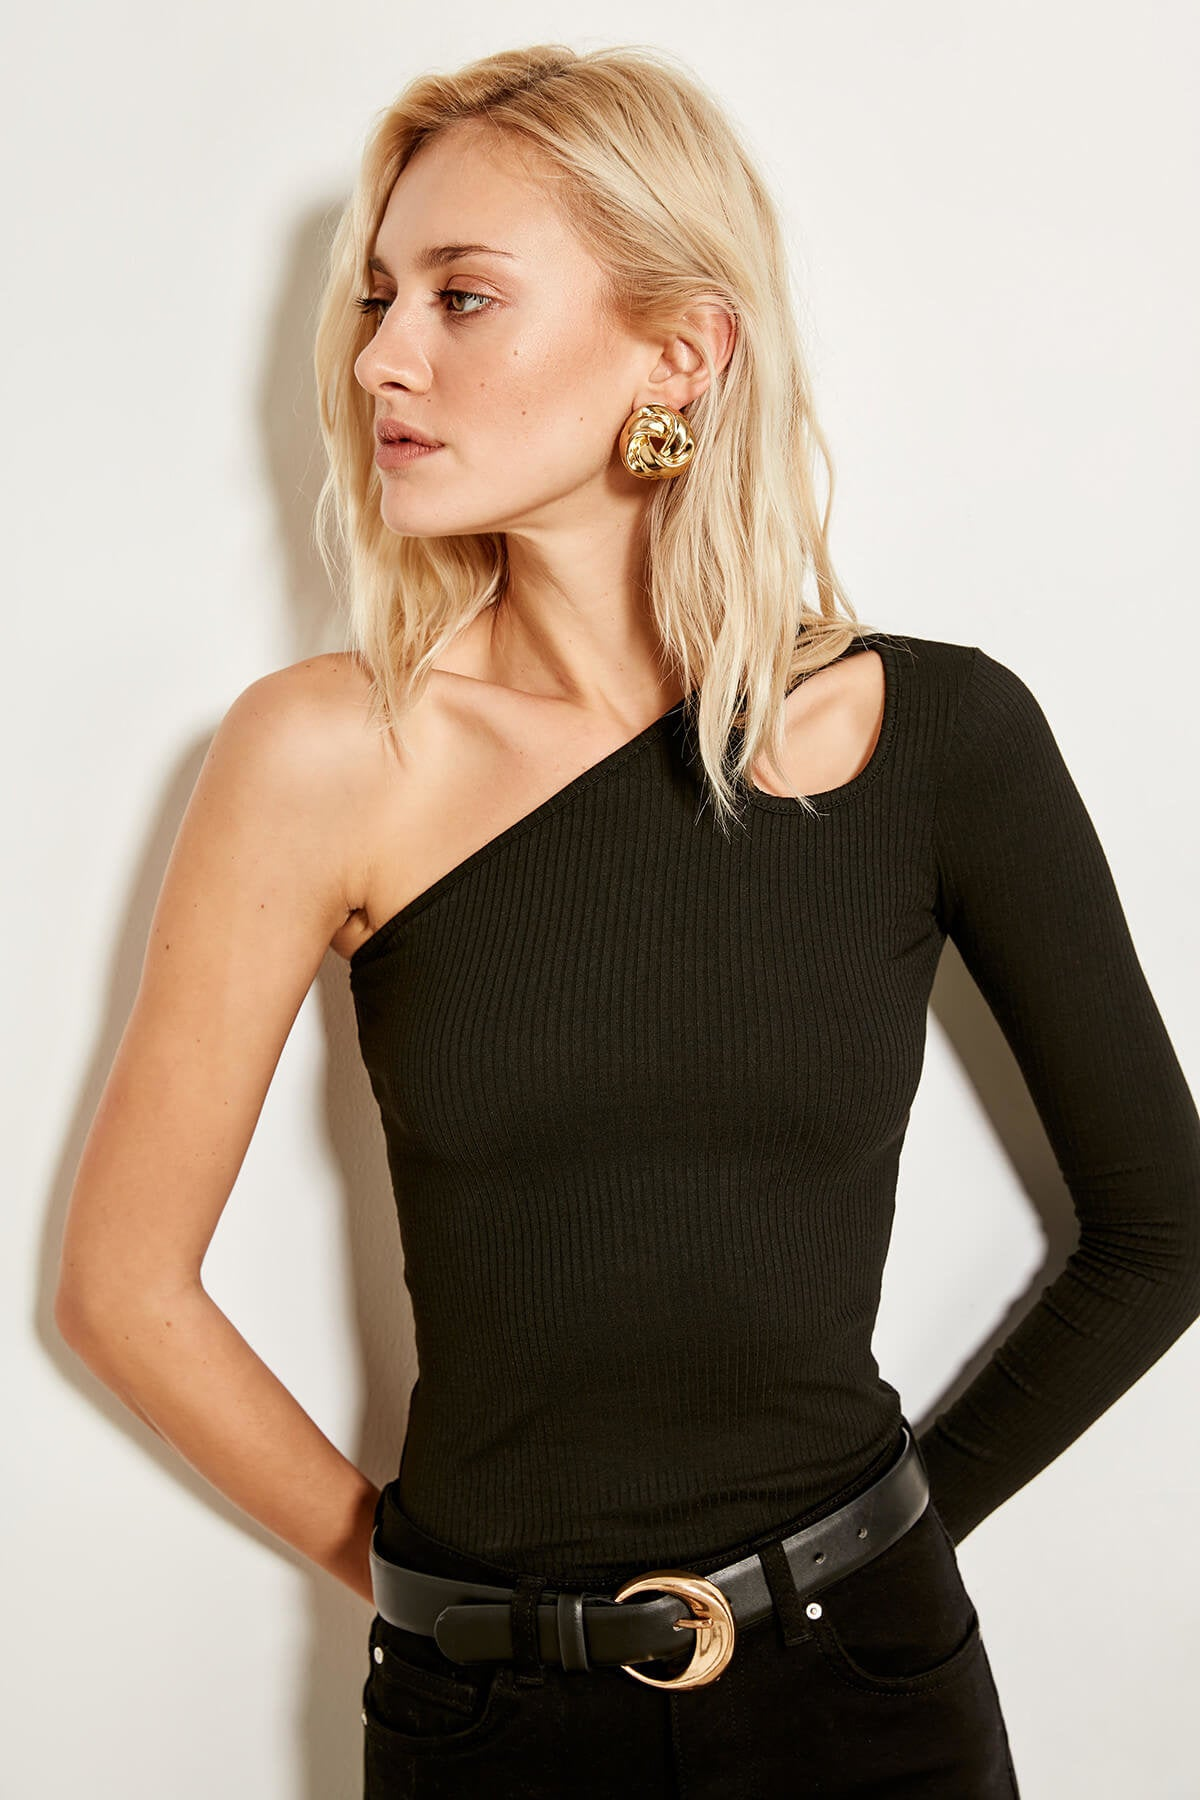 Black One-Sleeved Knitwear Sweater - Cut out Detail